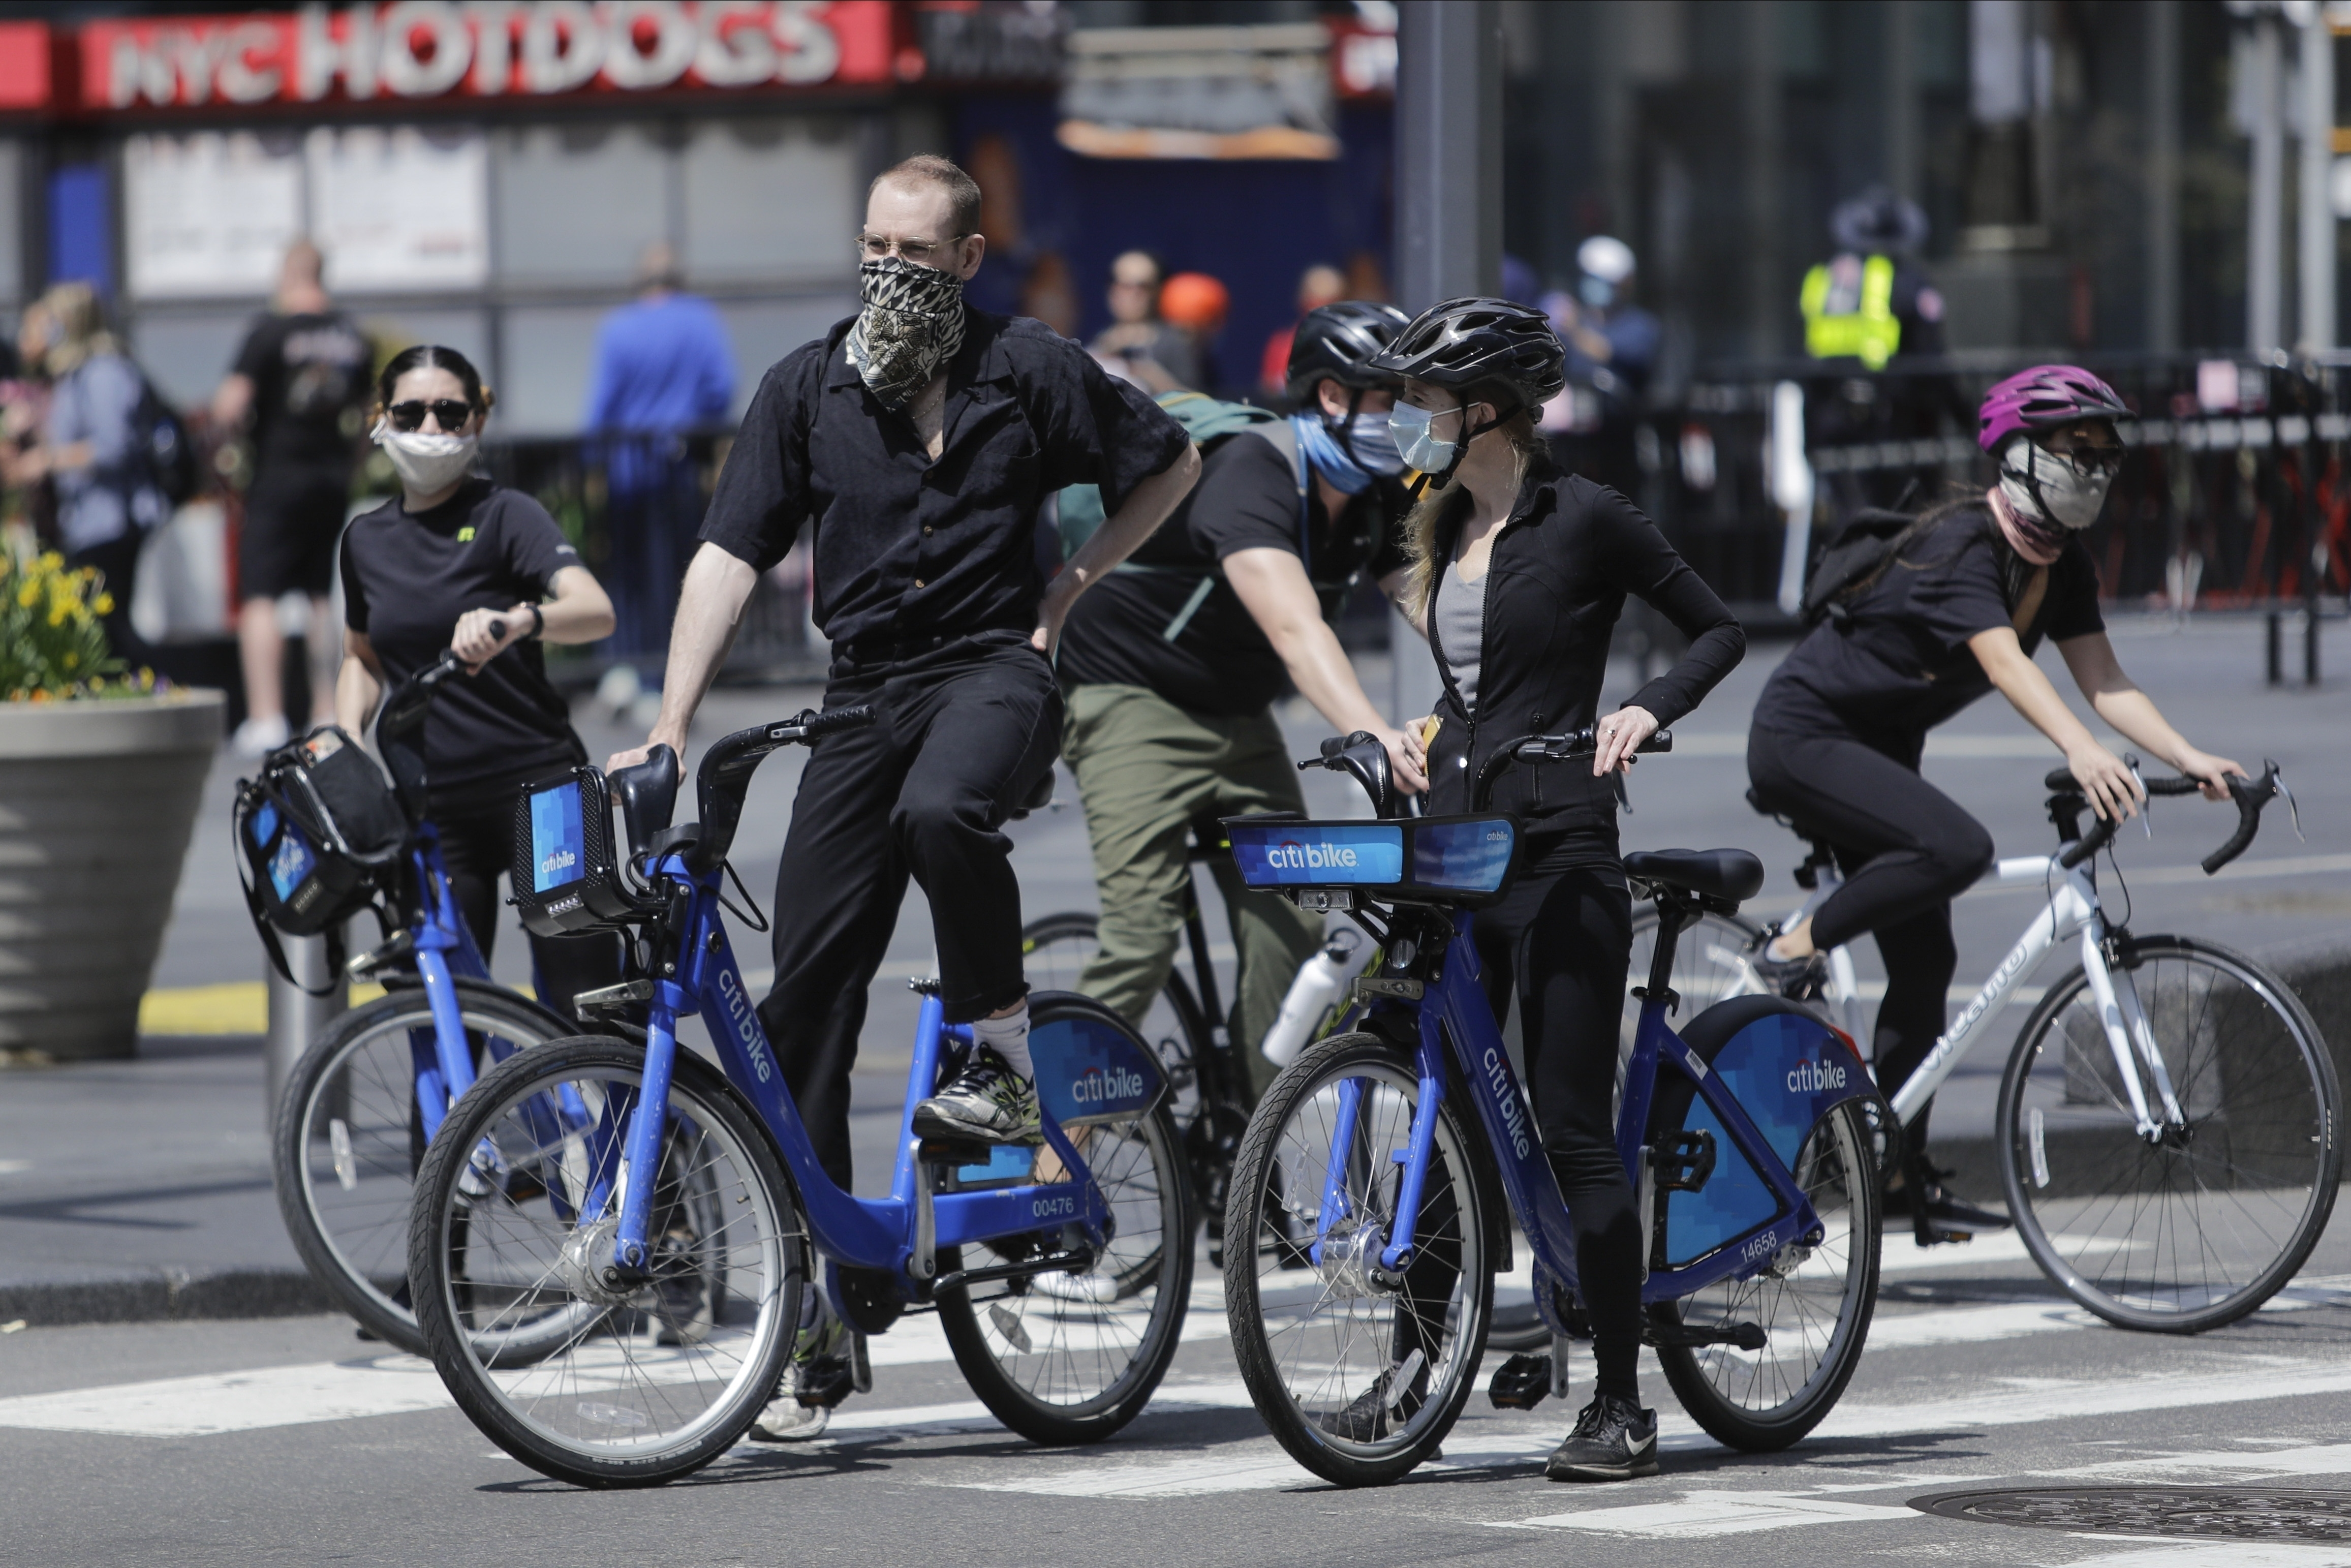 Cyclists wearing protective masks ride through Times Square